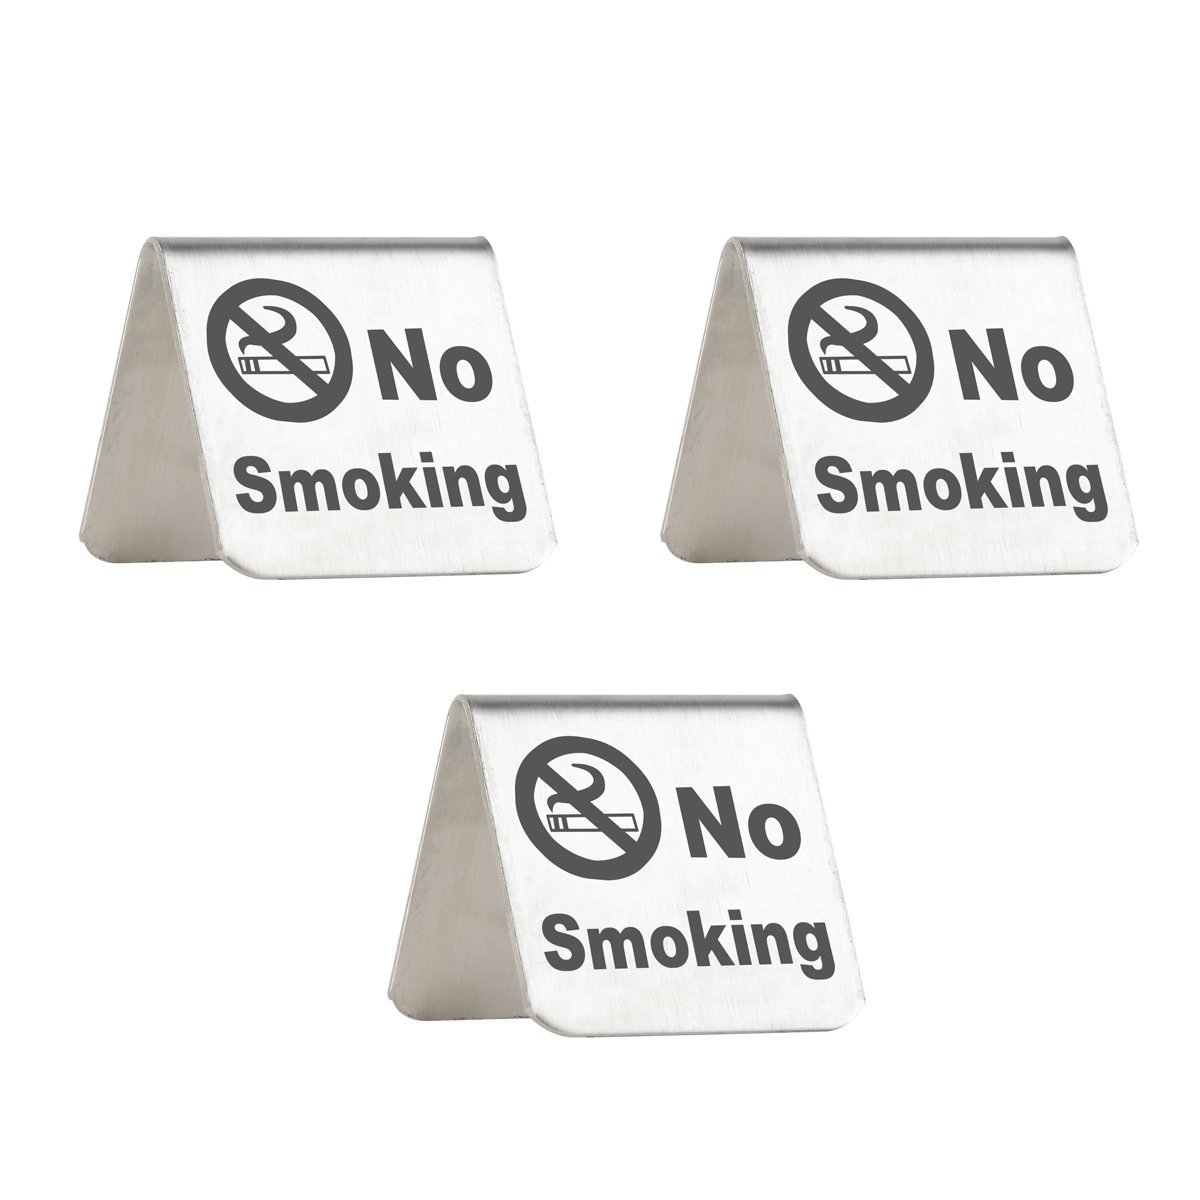 No Smoking Sign - Brushed Stainless Steel Free Standing Table Top Tent Compliance Signs - Double Sided - 2 By 2 Inch - Set of 3